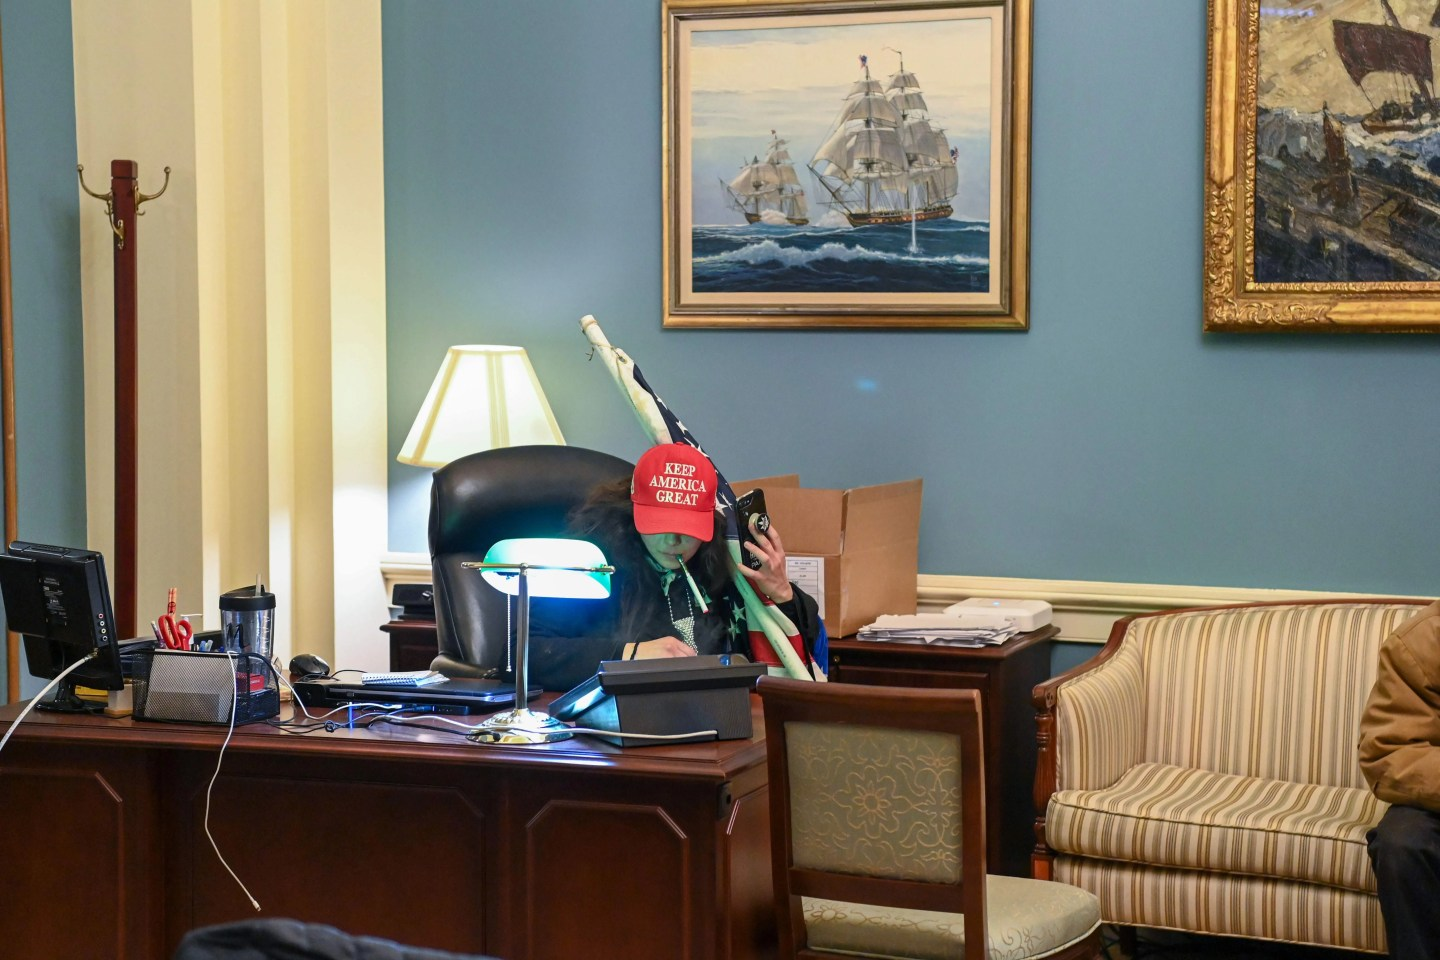 A supporter of President Donald Trump holding an American flag sits at a desk after invading the Capitol on Jan. 6 in Washington. Some wrote menacing notes in lawmakers' offices and smoked after breaking in.